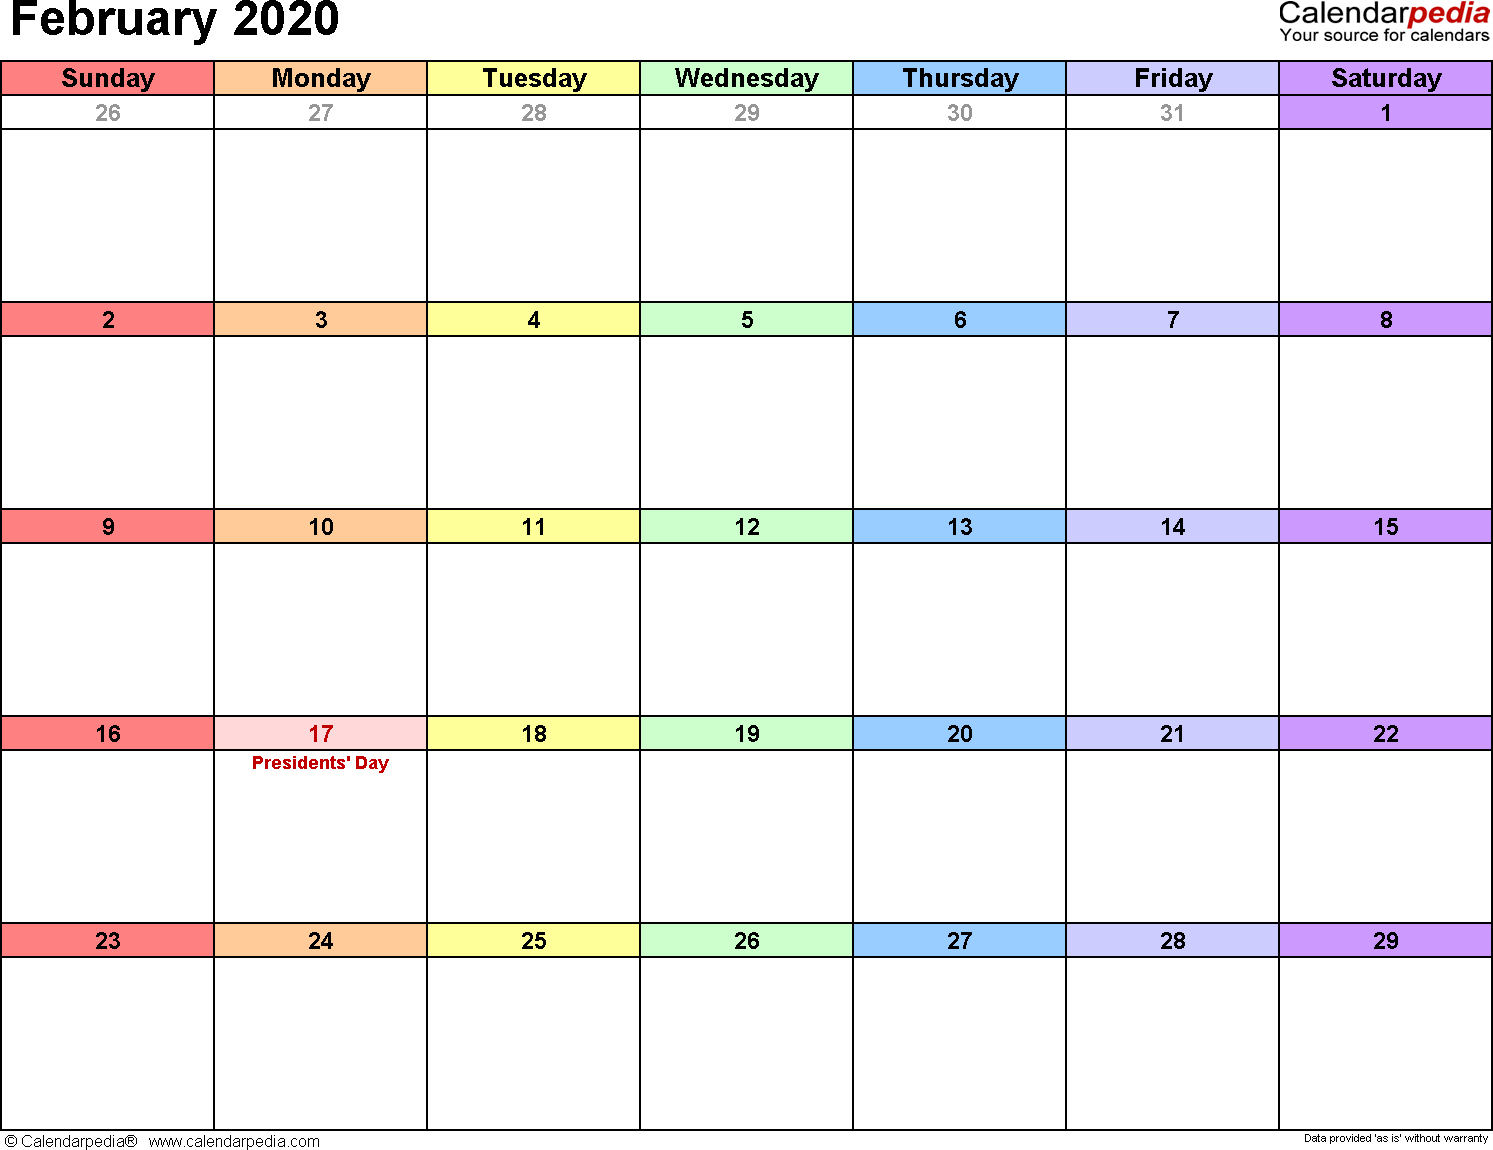 February 2020 Blank Calendar February 2020 Calendars for Word, Excel & PDF